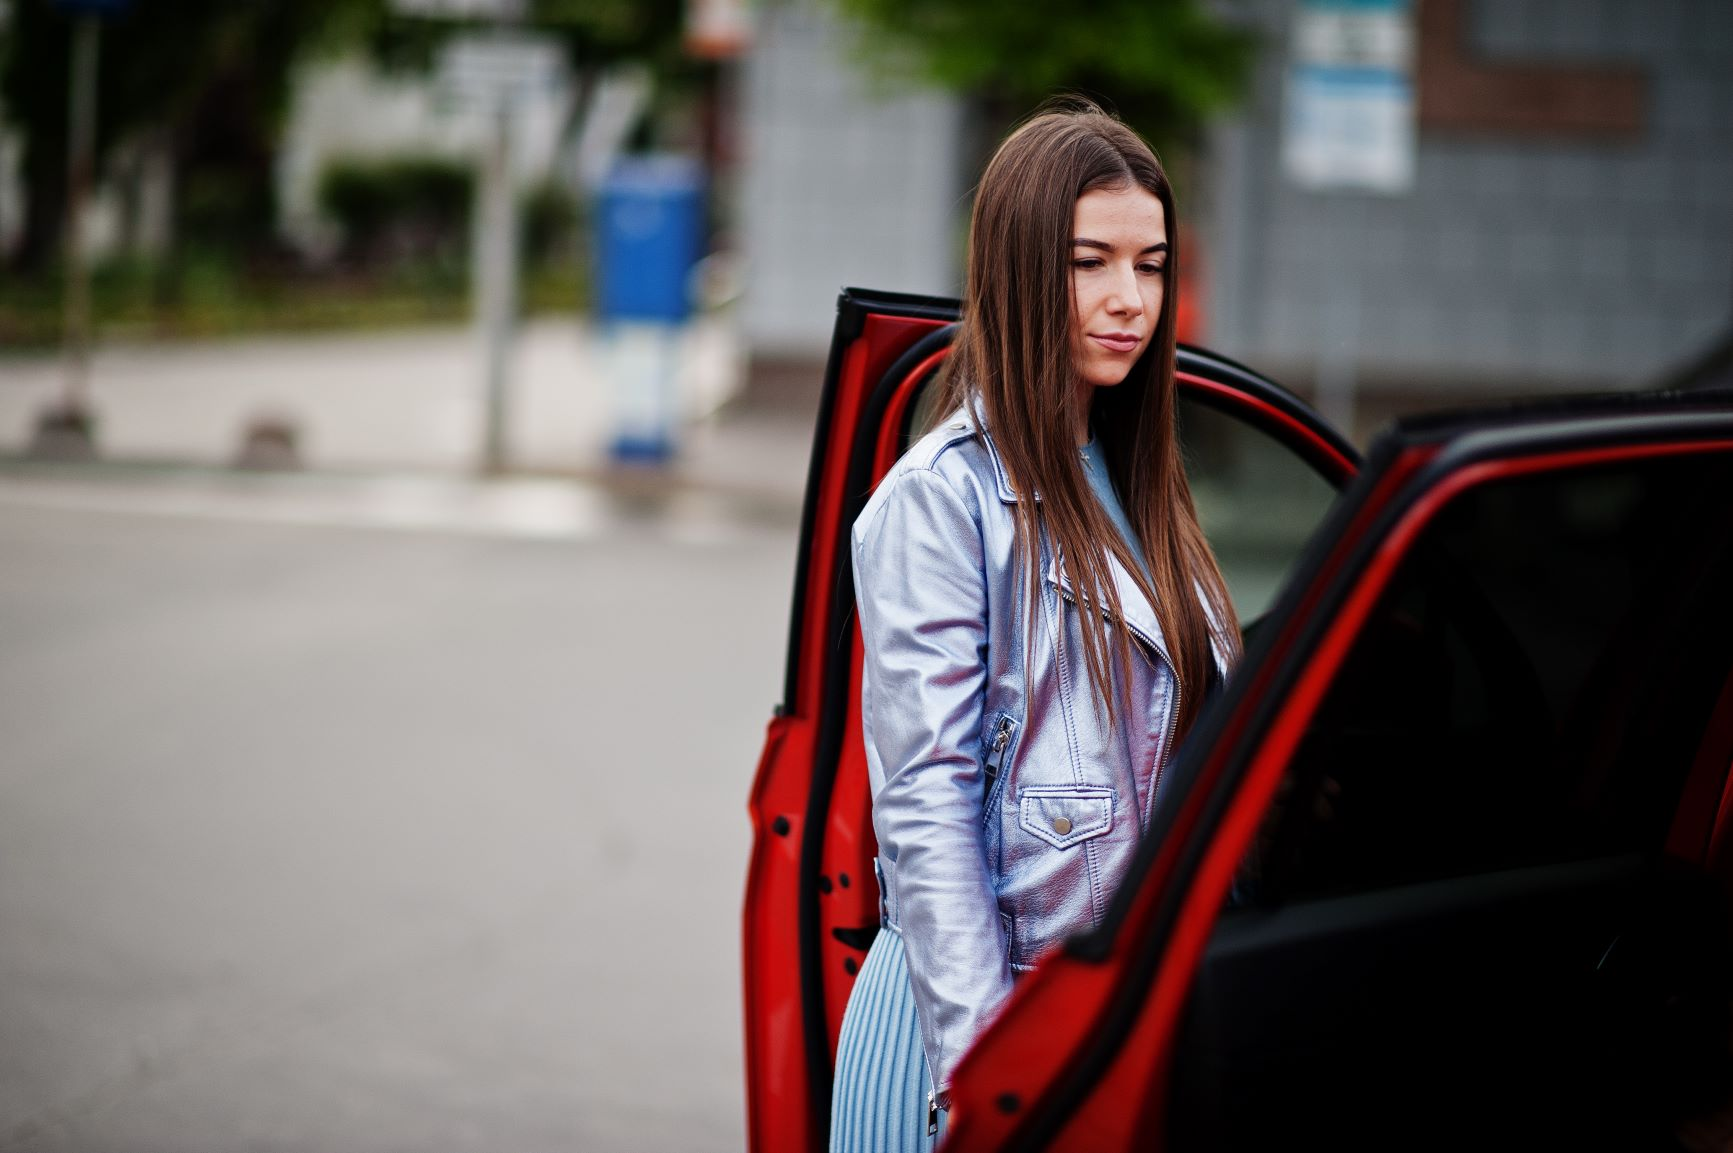 woman standing next to red car